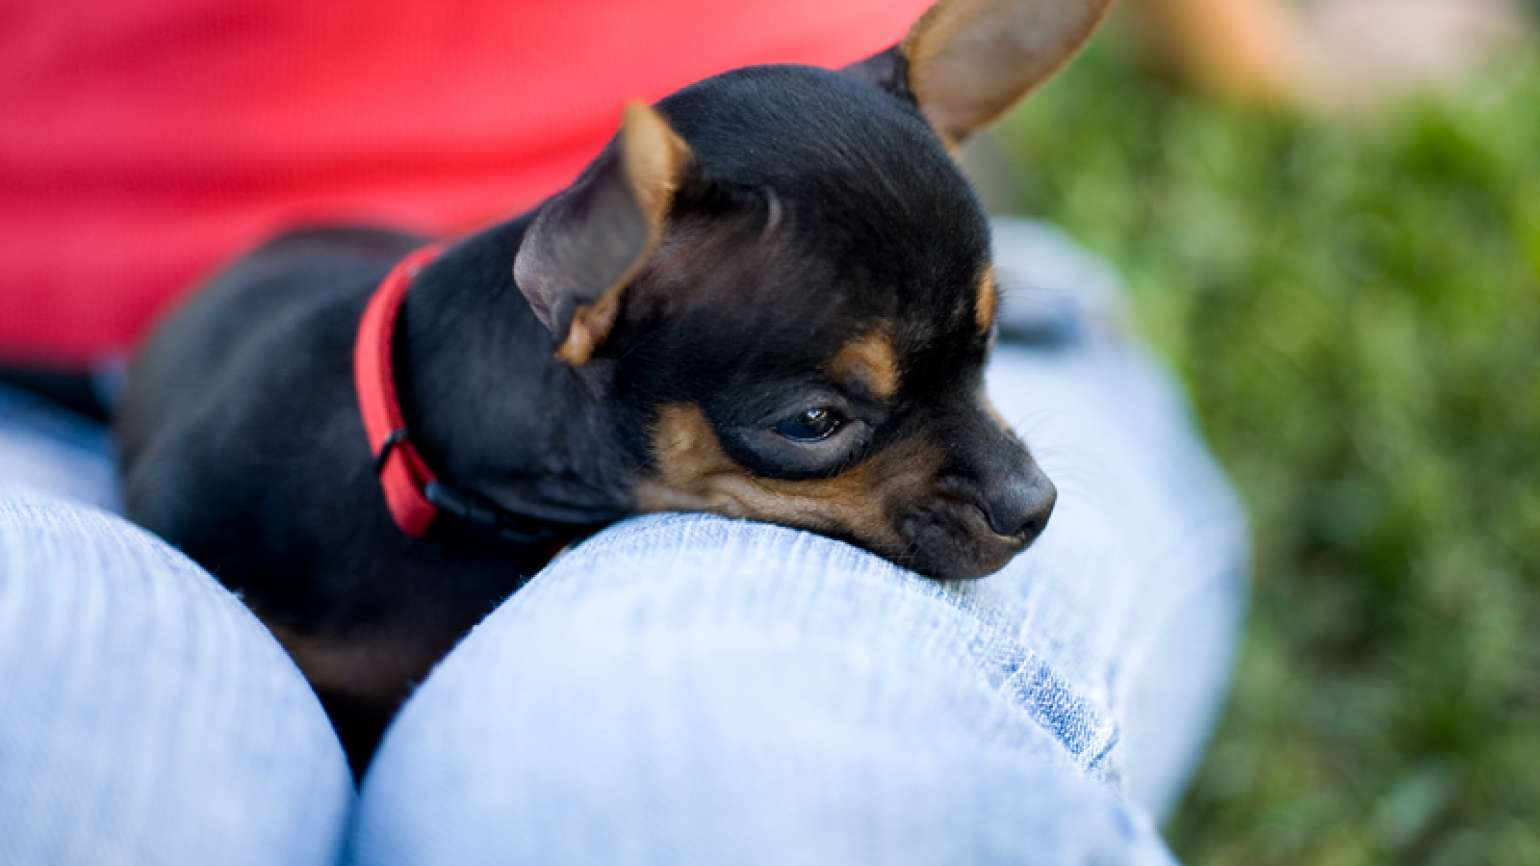 A black chihuahua in a woman's lap